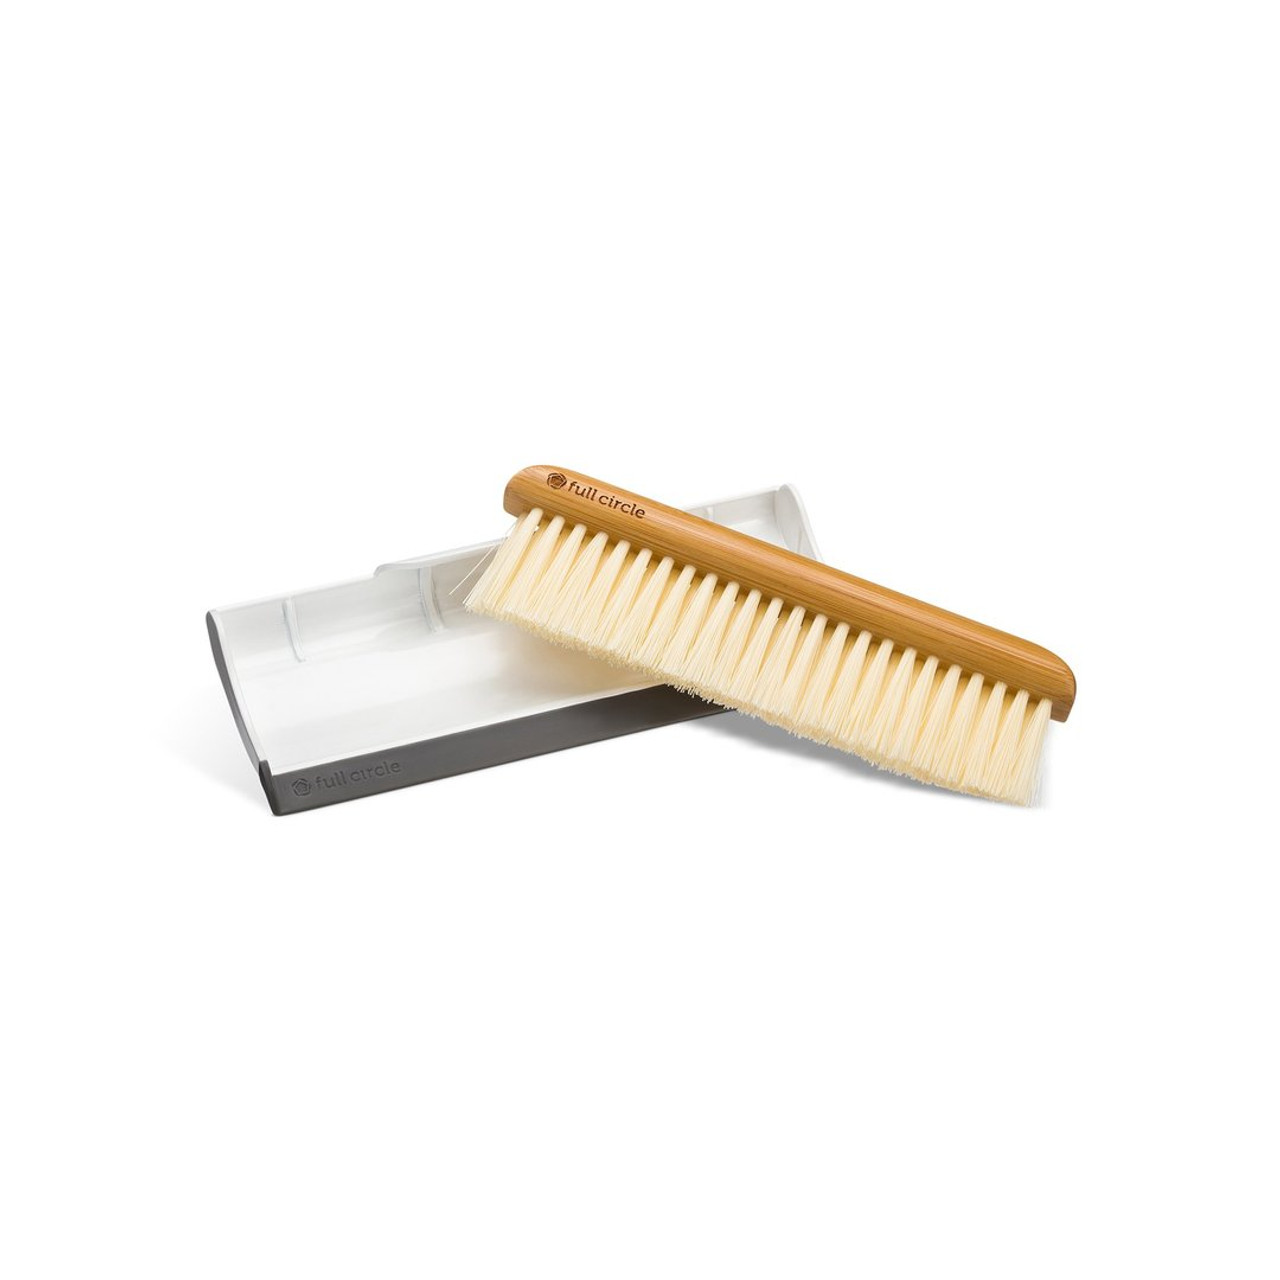 FULL CIRCLE CRUMB RUNNER COUNTER SWEEP & SQUEEGEE